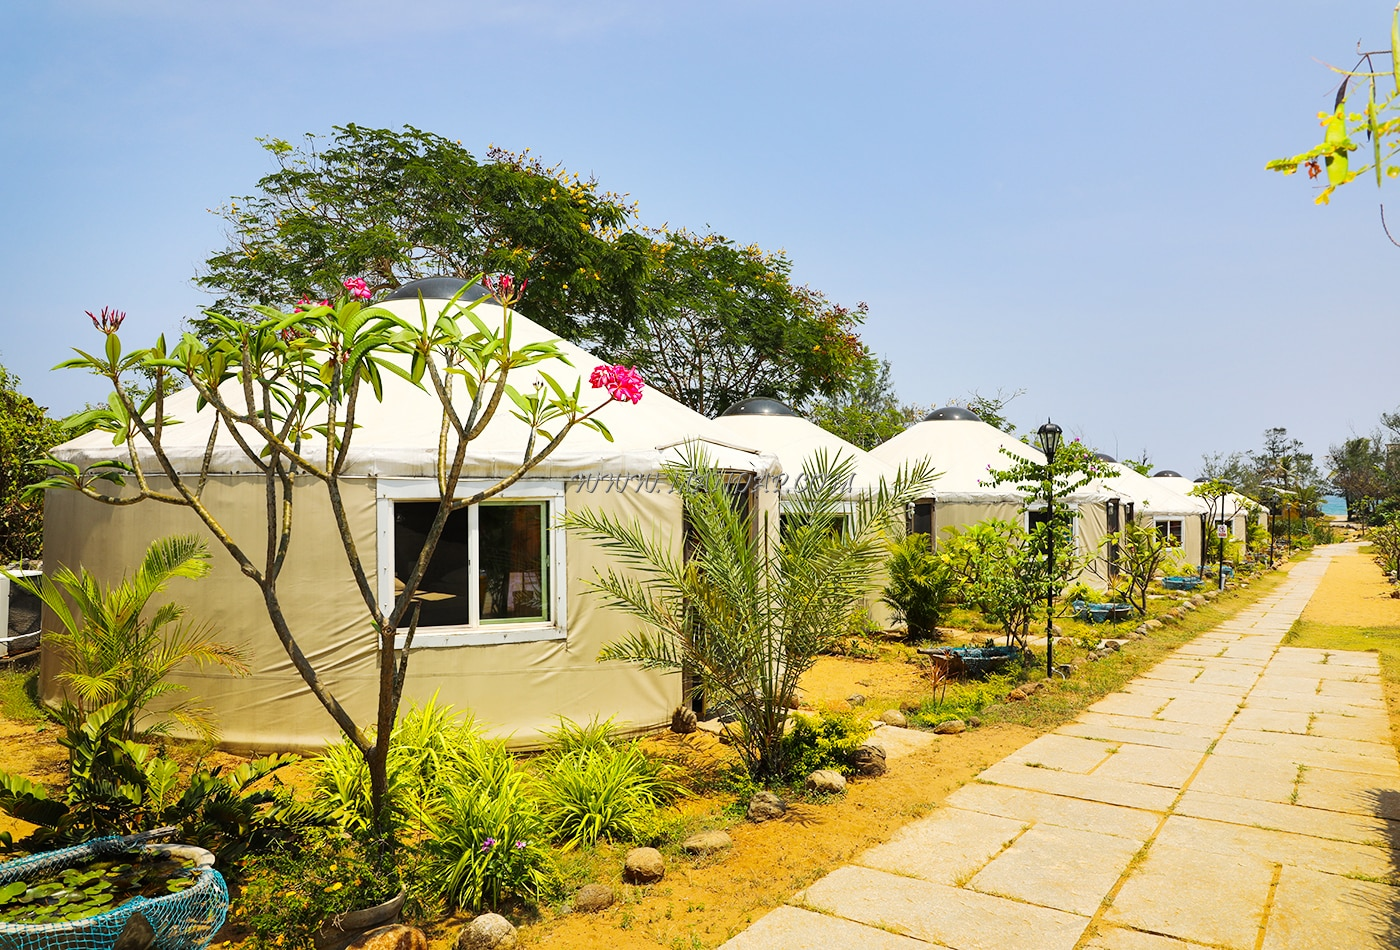 Find the availability of the Casuarina Bay Beh Resort Open Lawn in Kovalam, Chennai and avail special offers